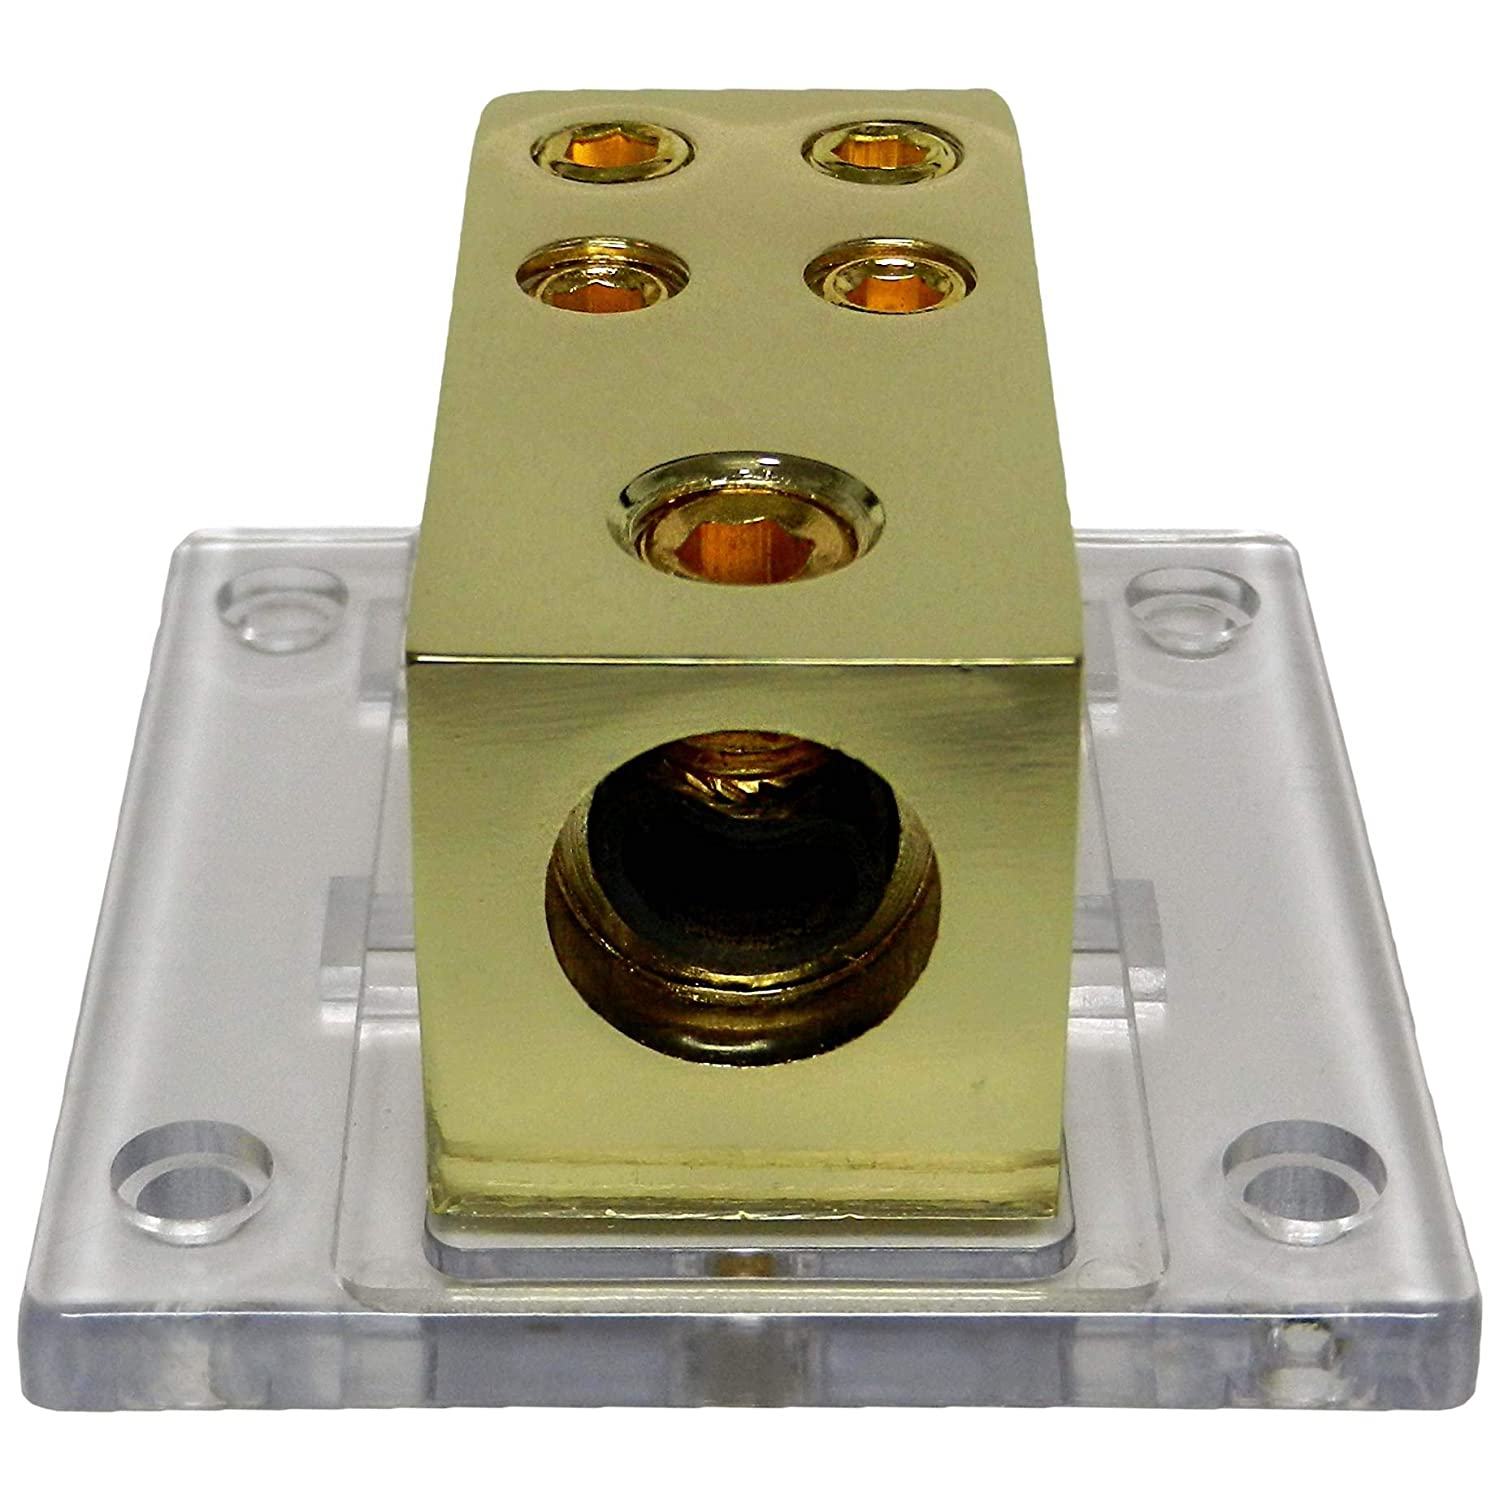 DB004 LYSB01IPNSPS2-ELECTRNCS Bass Rockers 4-Way Distribution Block 1 x 0GA to 4 x 4GA